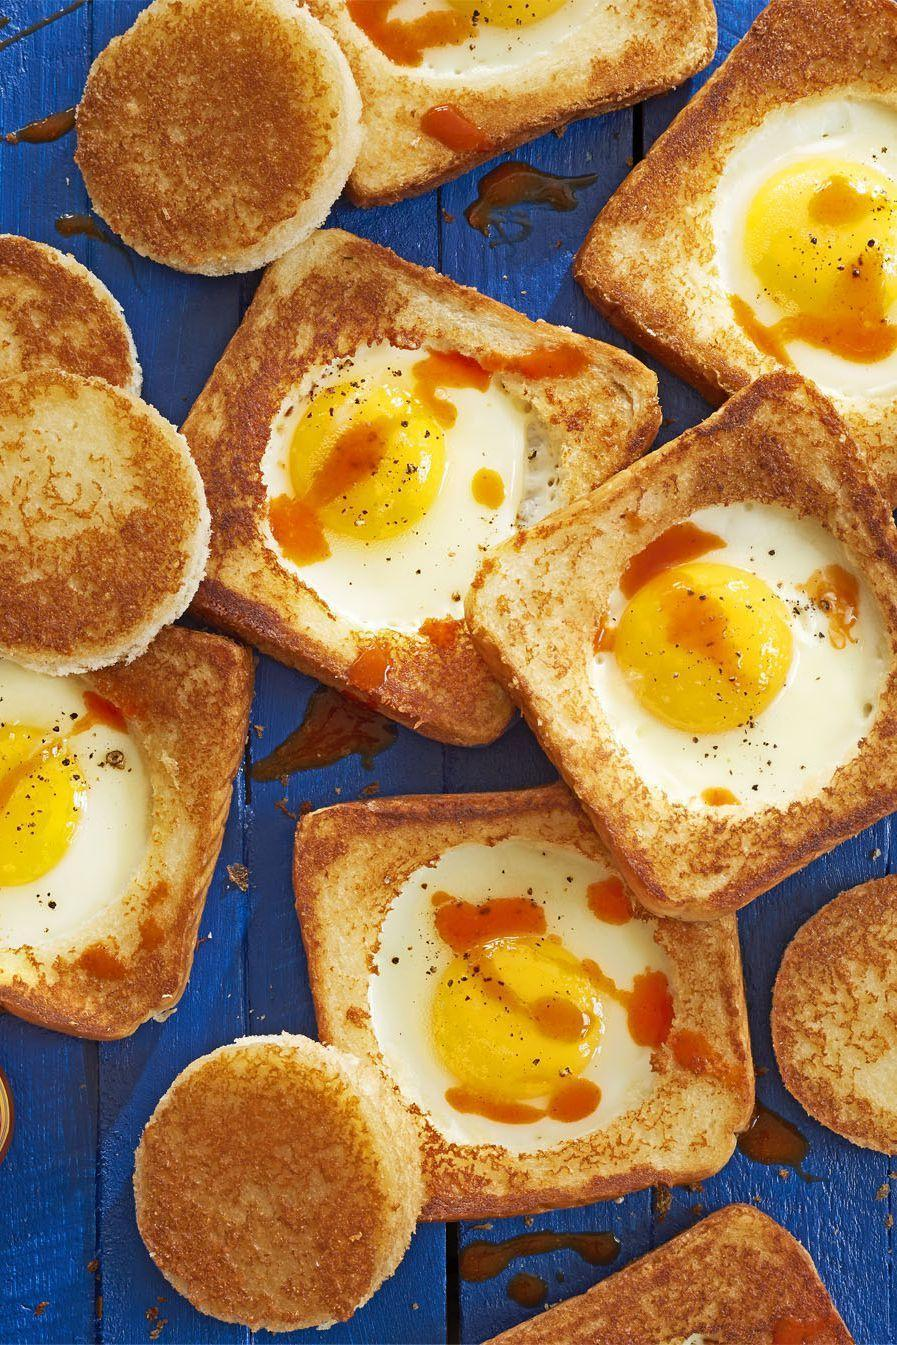 """<p>Wake up little ones on Easter morning with these fun-to-eat egg-in-a-holes. </p><p><strong><a href=""""https://www.countryliving.com/food-drinks/recipes/a41630/parmesan-egg-in-hole-recipe/"""" rel=""""nofollow noopener"""" target=""""_blank"""" data-ylk=""""slk:Get the recipe"""" class=""""link rapid-noclick-resp"""">Get the recipe</a>.</strong></p>"""